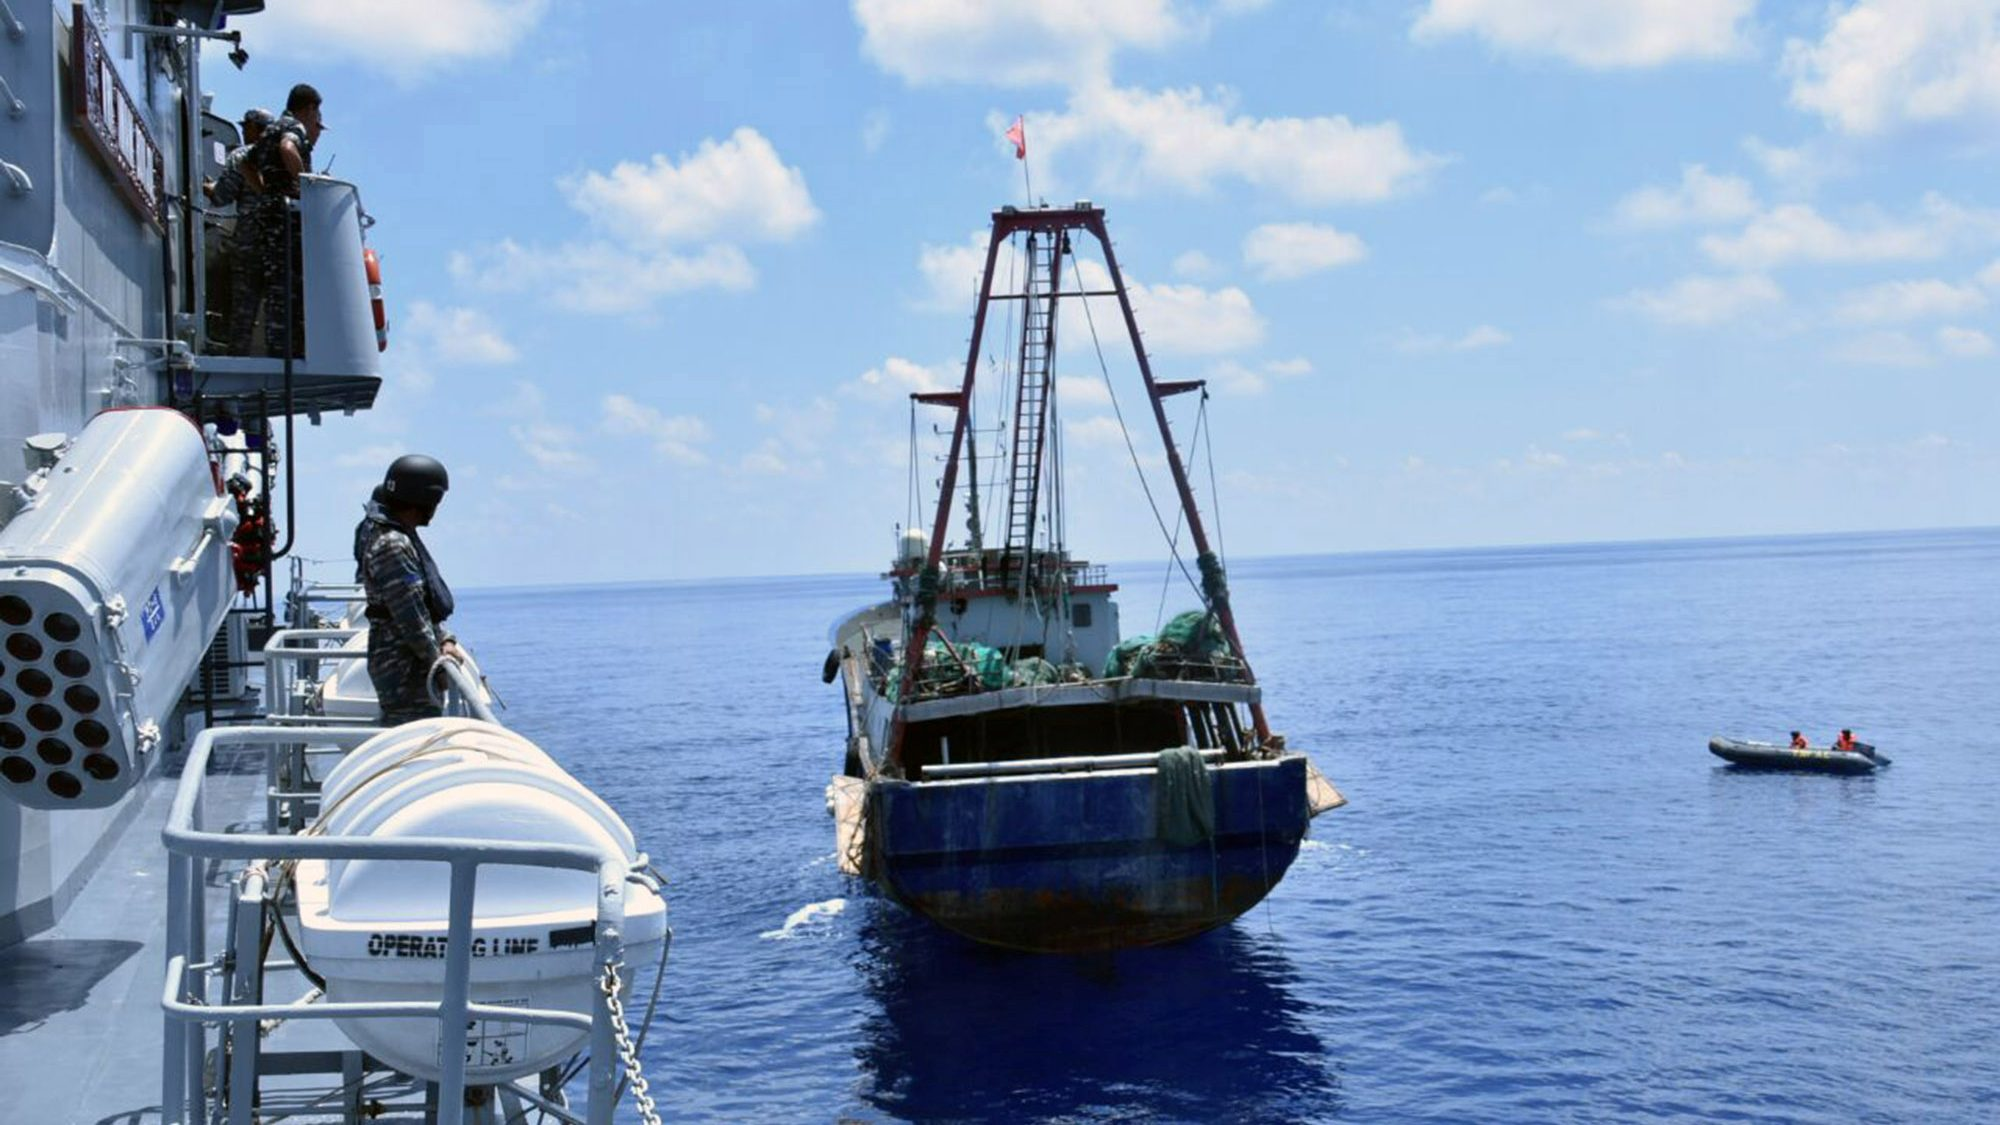 In a threat to China, Malaysia says it will sink illegal fishing